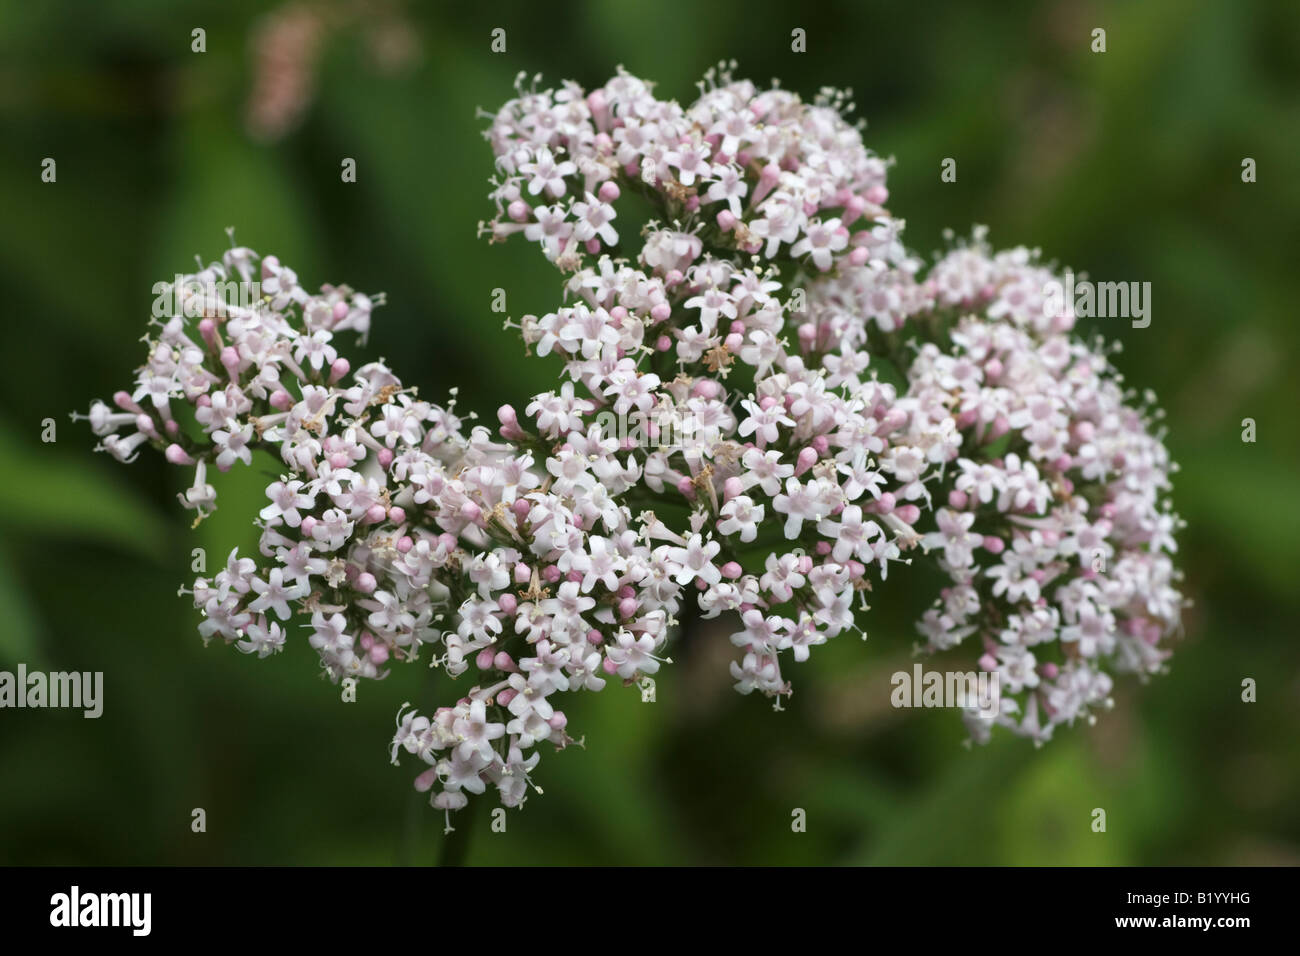 Pink valerian, Valeriana officinalis, flowers. - Stock Image